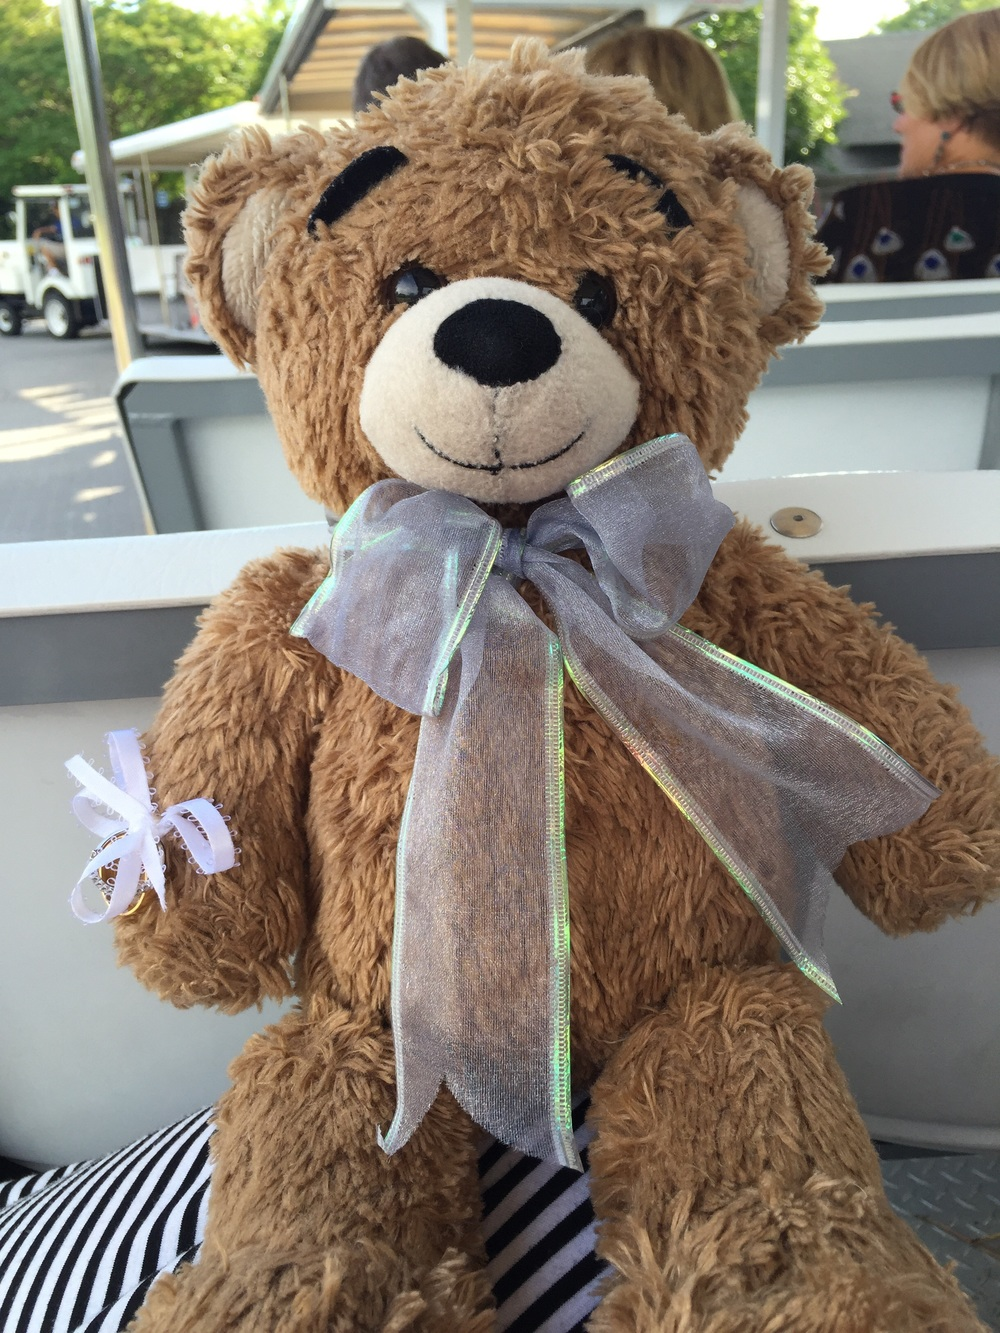 This little guy is one of my favorite details! Matt bought this for Kim when they started dating. Her ring bearer carried this cute teddy down the aisle. SO CUTE!